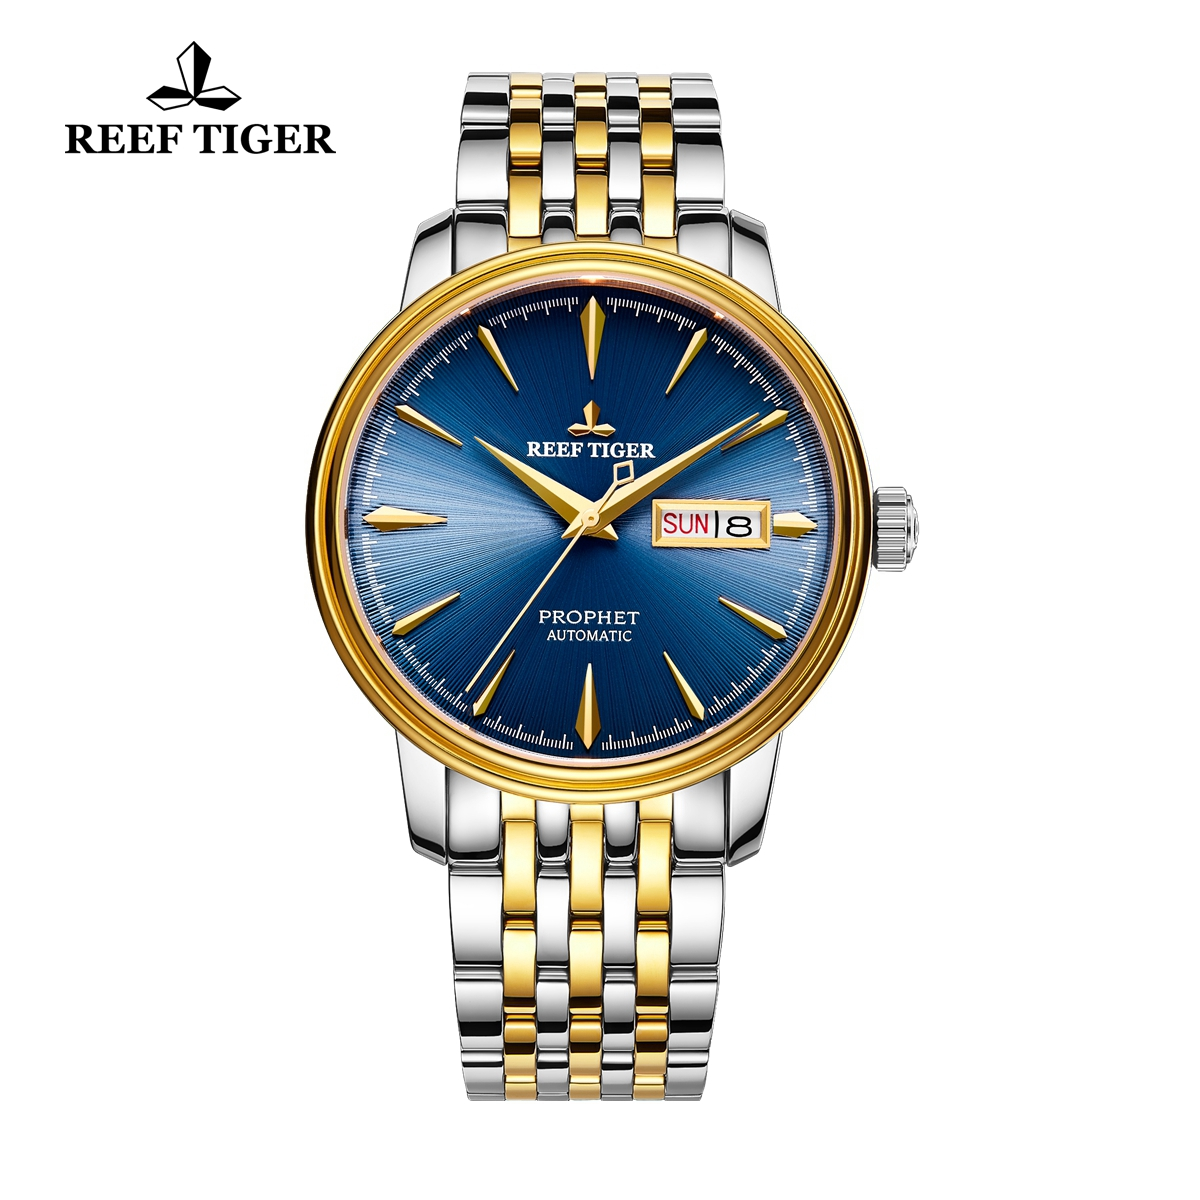 Reef Tiger Prophet Business Watch Automatic Yellow Gold/Steel Blue Dial RGA8236-GLT